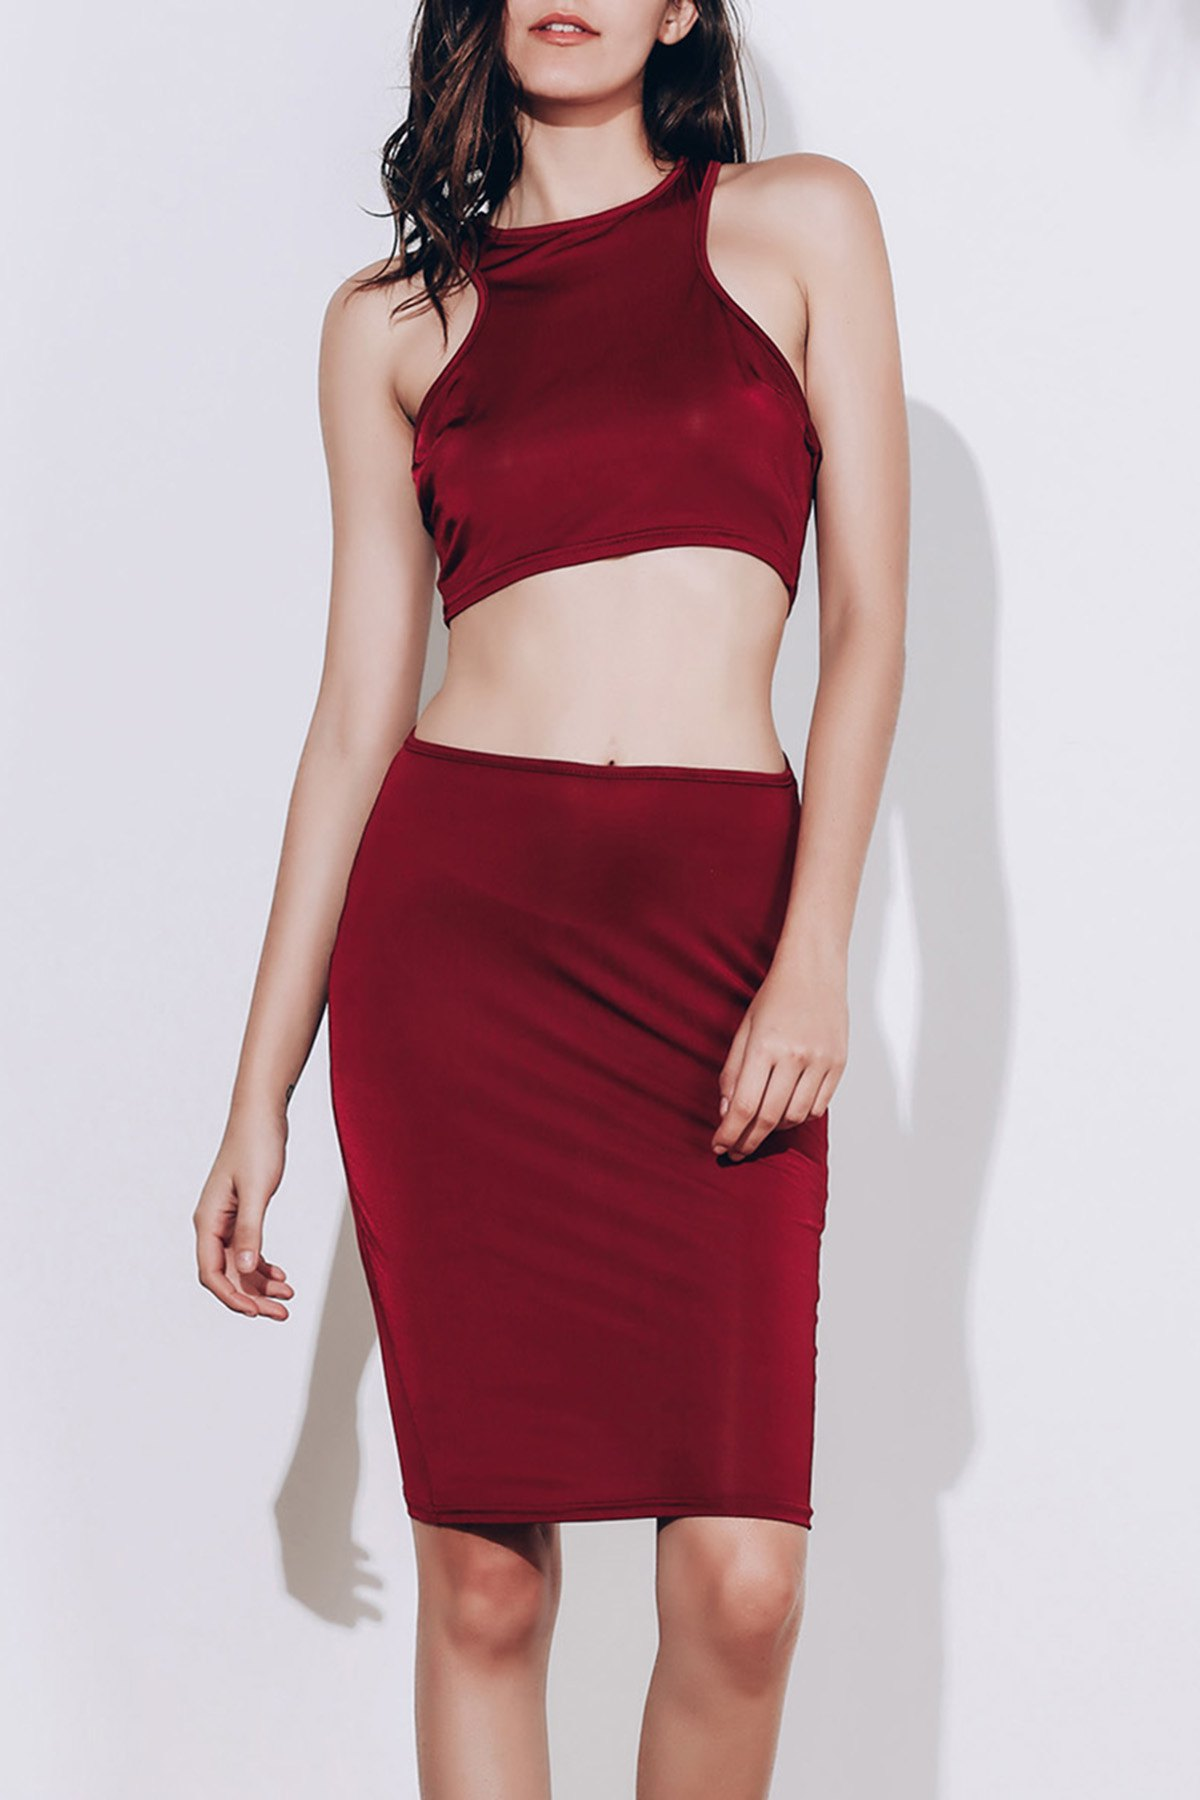 Alluring Sleeveless Round Neck Solid Color Crop Top + High-Waisted Skirt Women's Twinset - WINE RED S